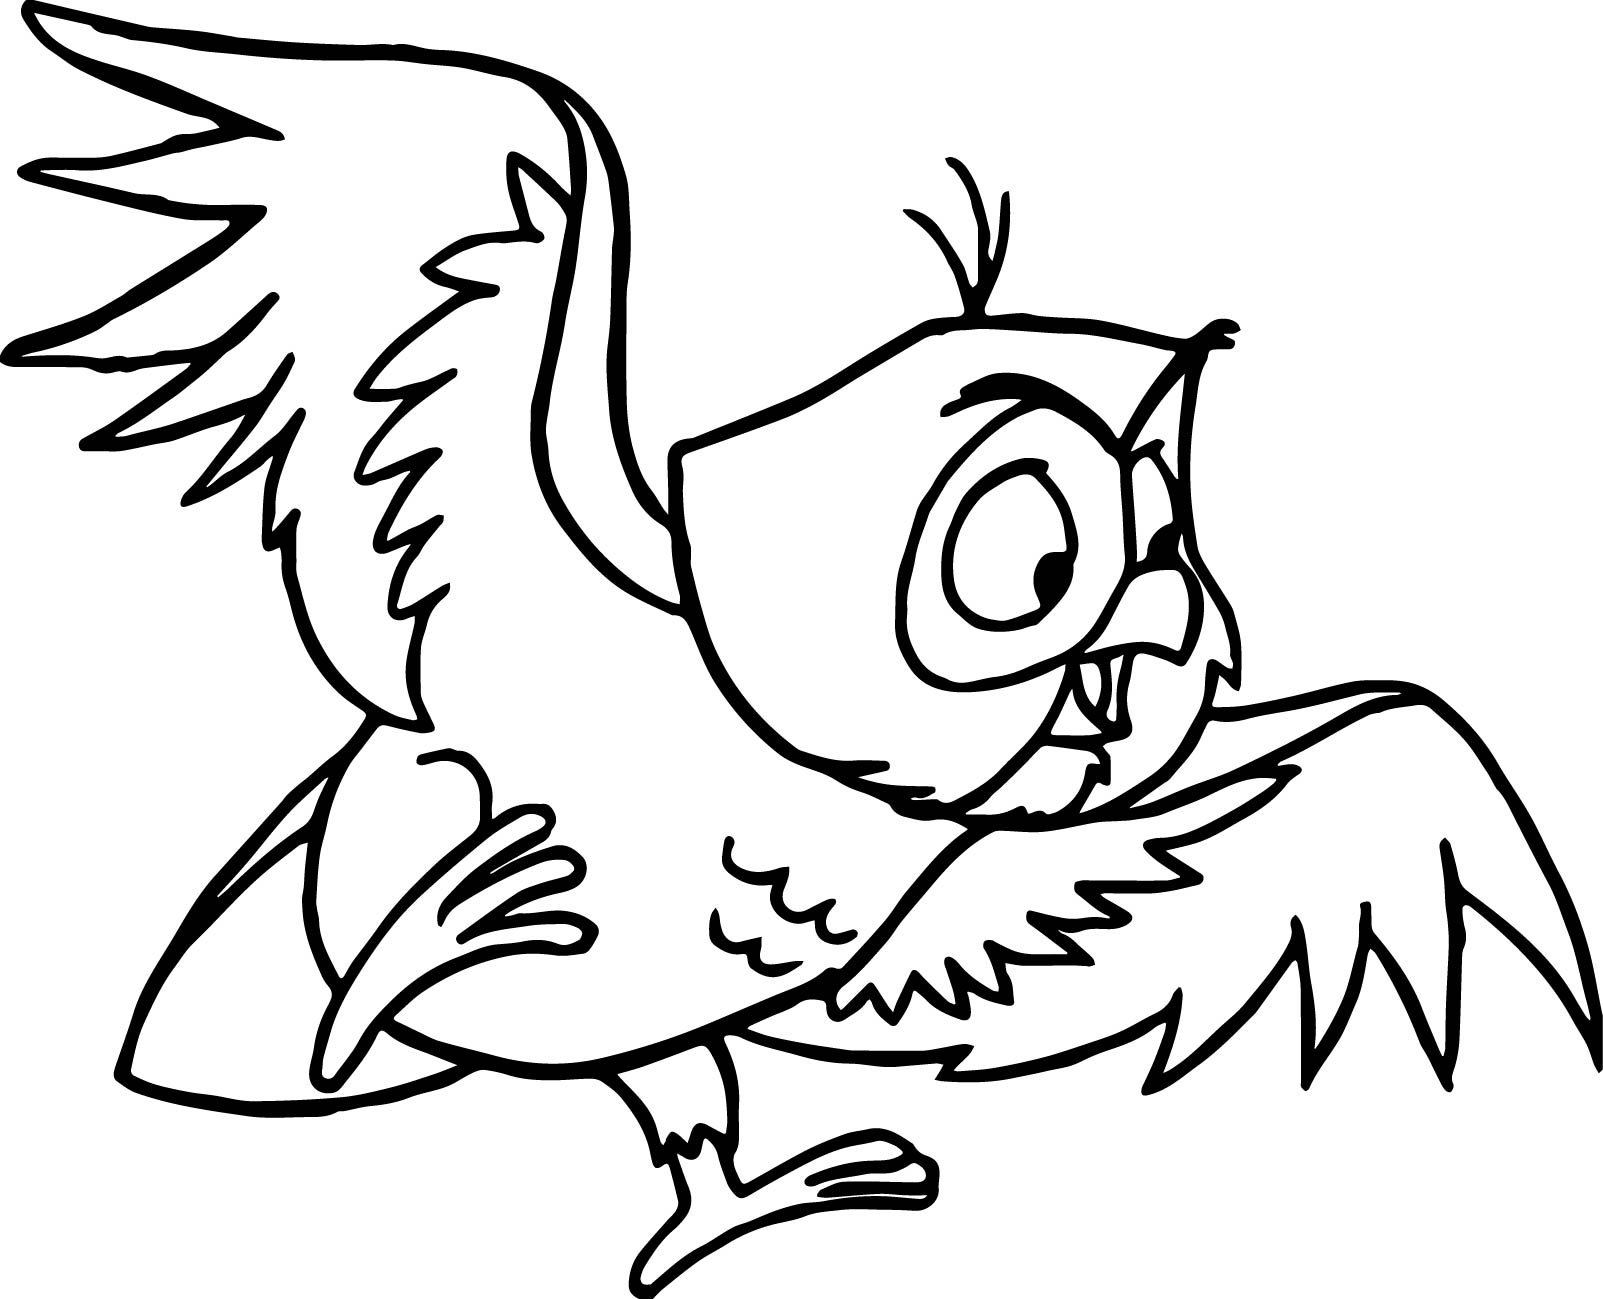 Aurora misc sleeping beauty animal owl coloring page for Sleeping coloring page